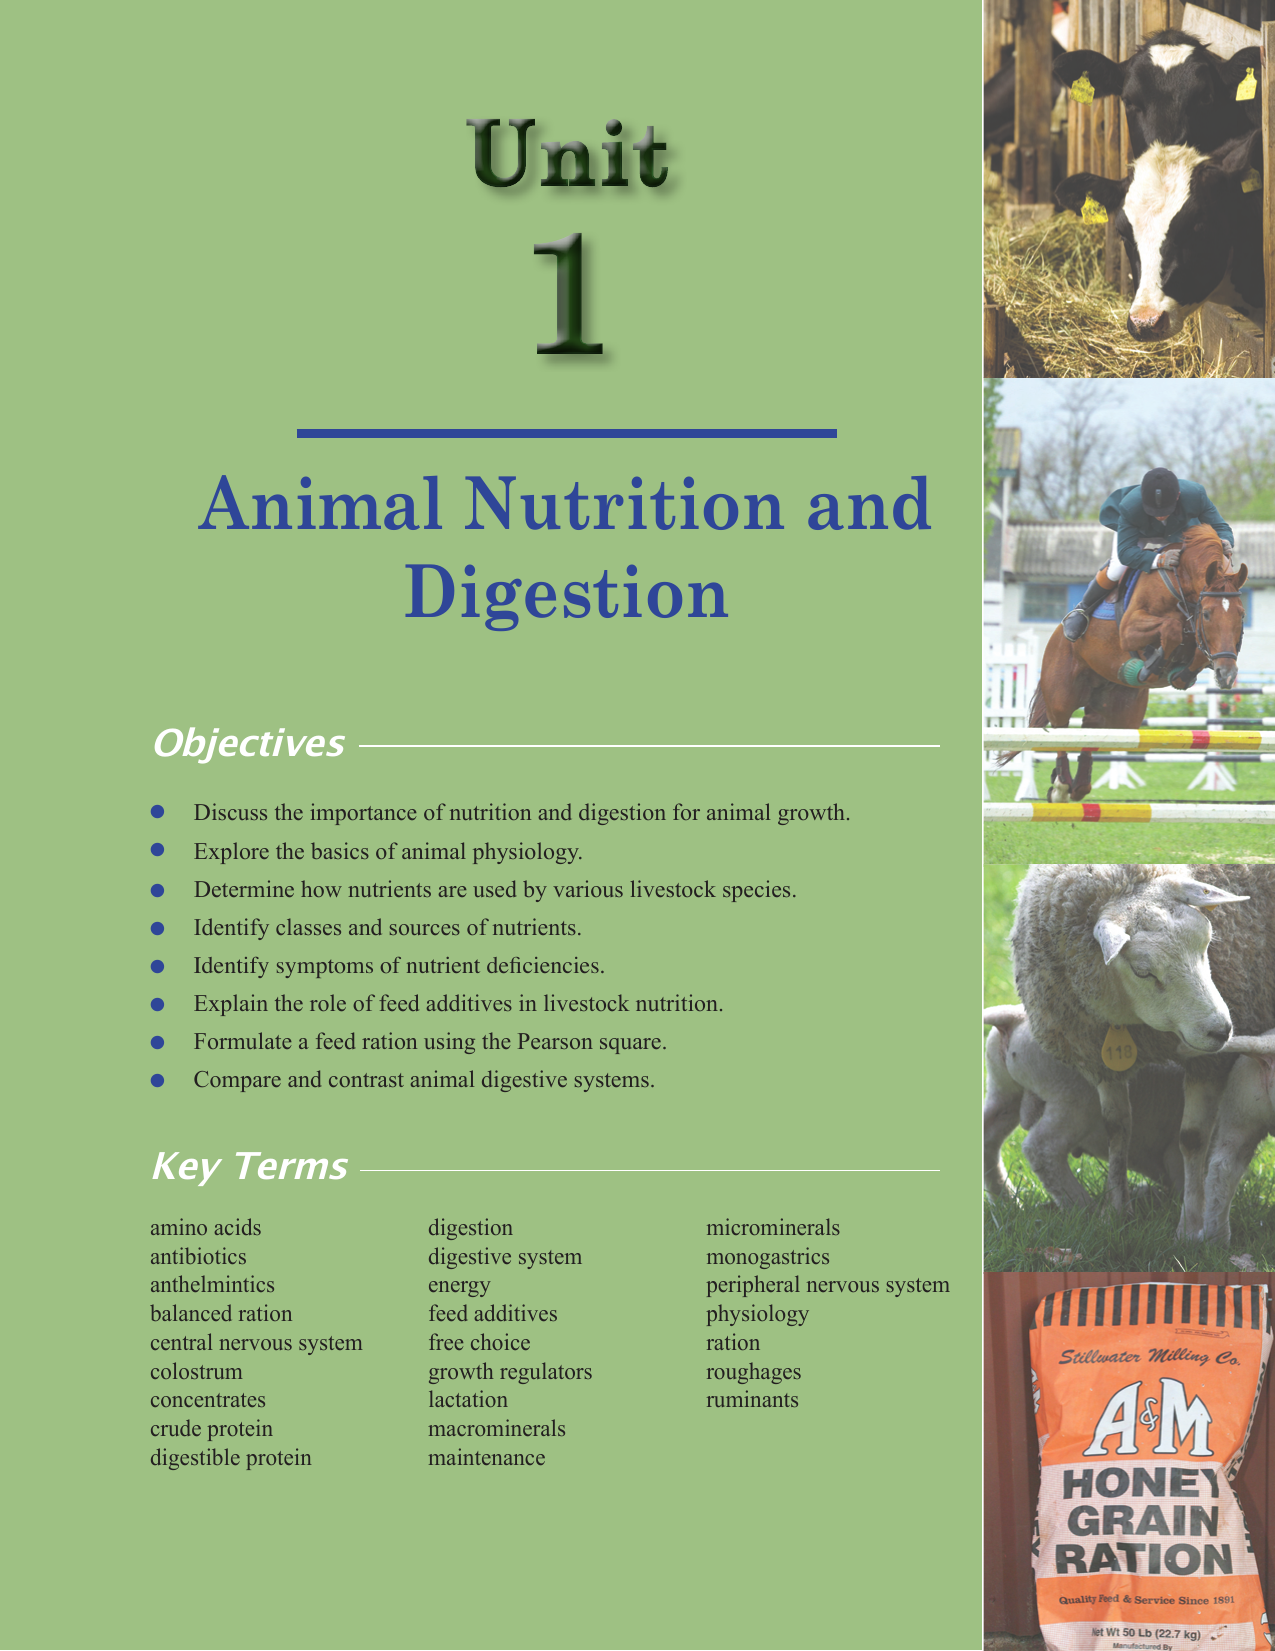 Animal Nutrition and Digestion